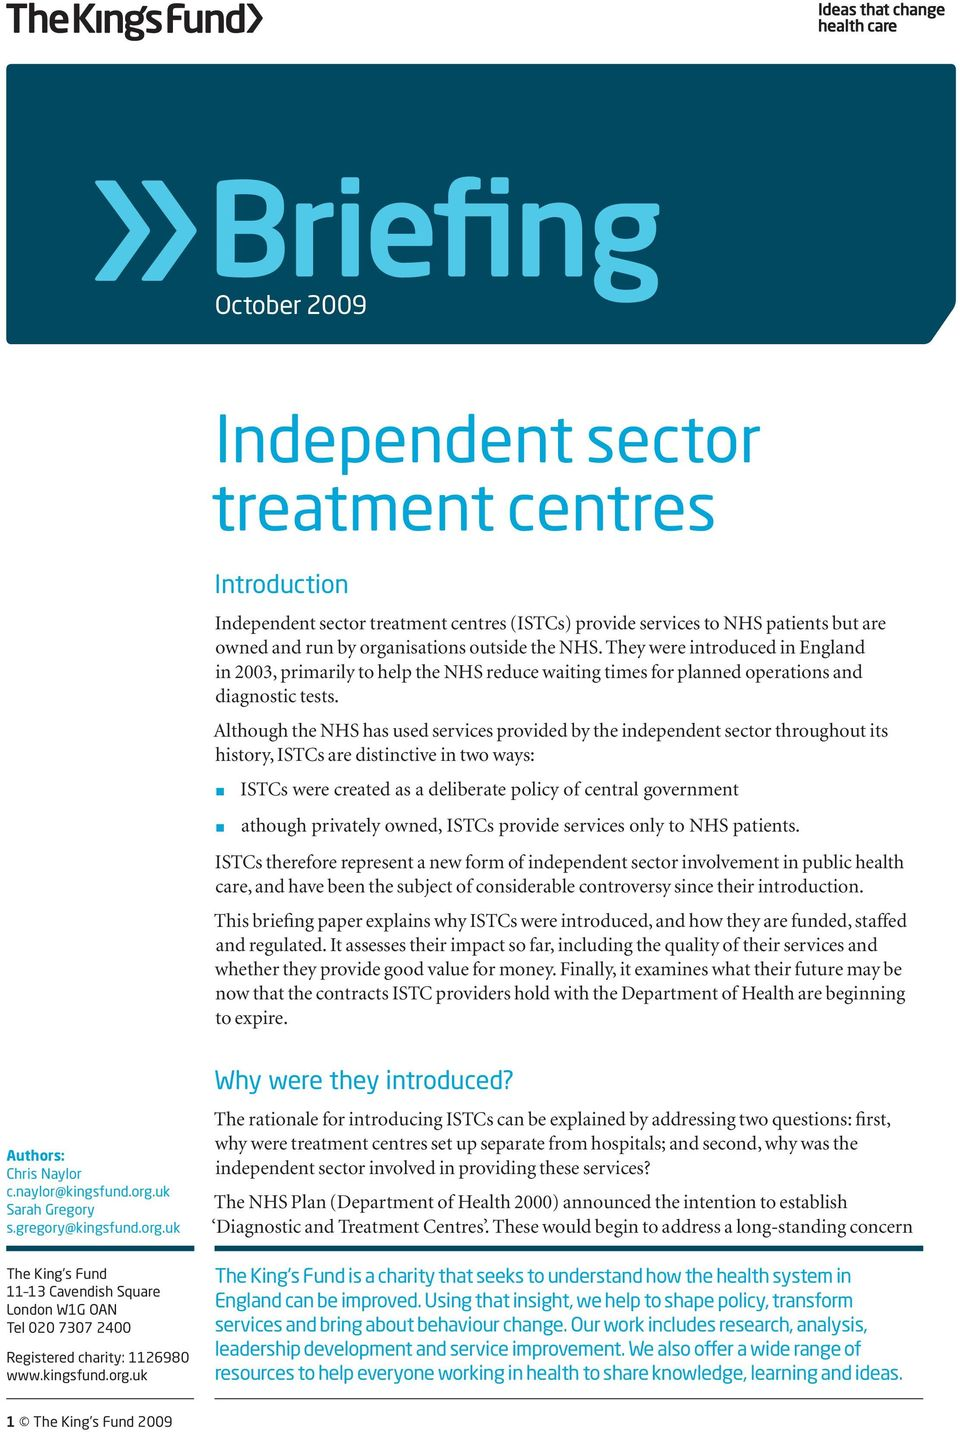 Although the NHS has used services provided by the independent sector throughout its history, ISTCs are distinctive in two ways: ISTCs were created as a deliberate policy of central government